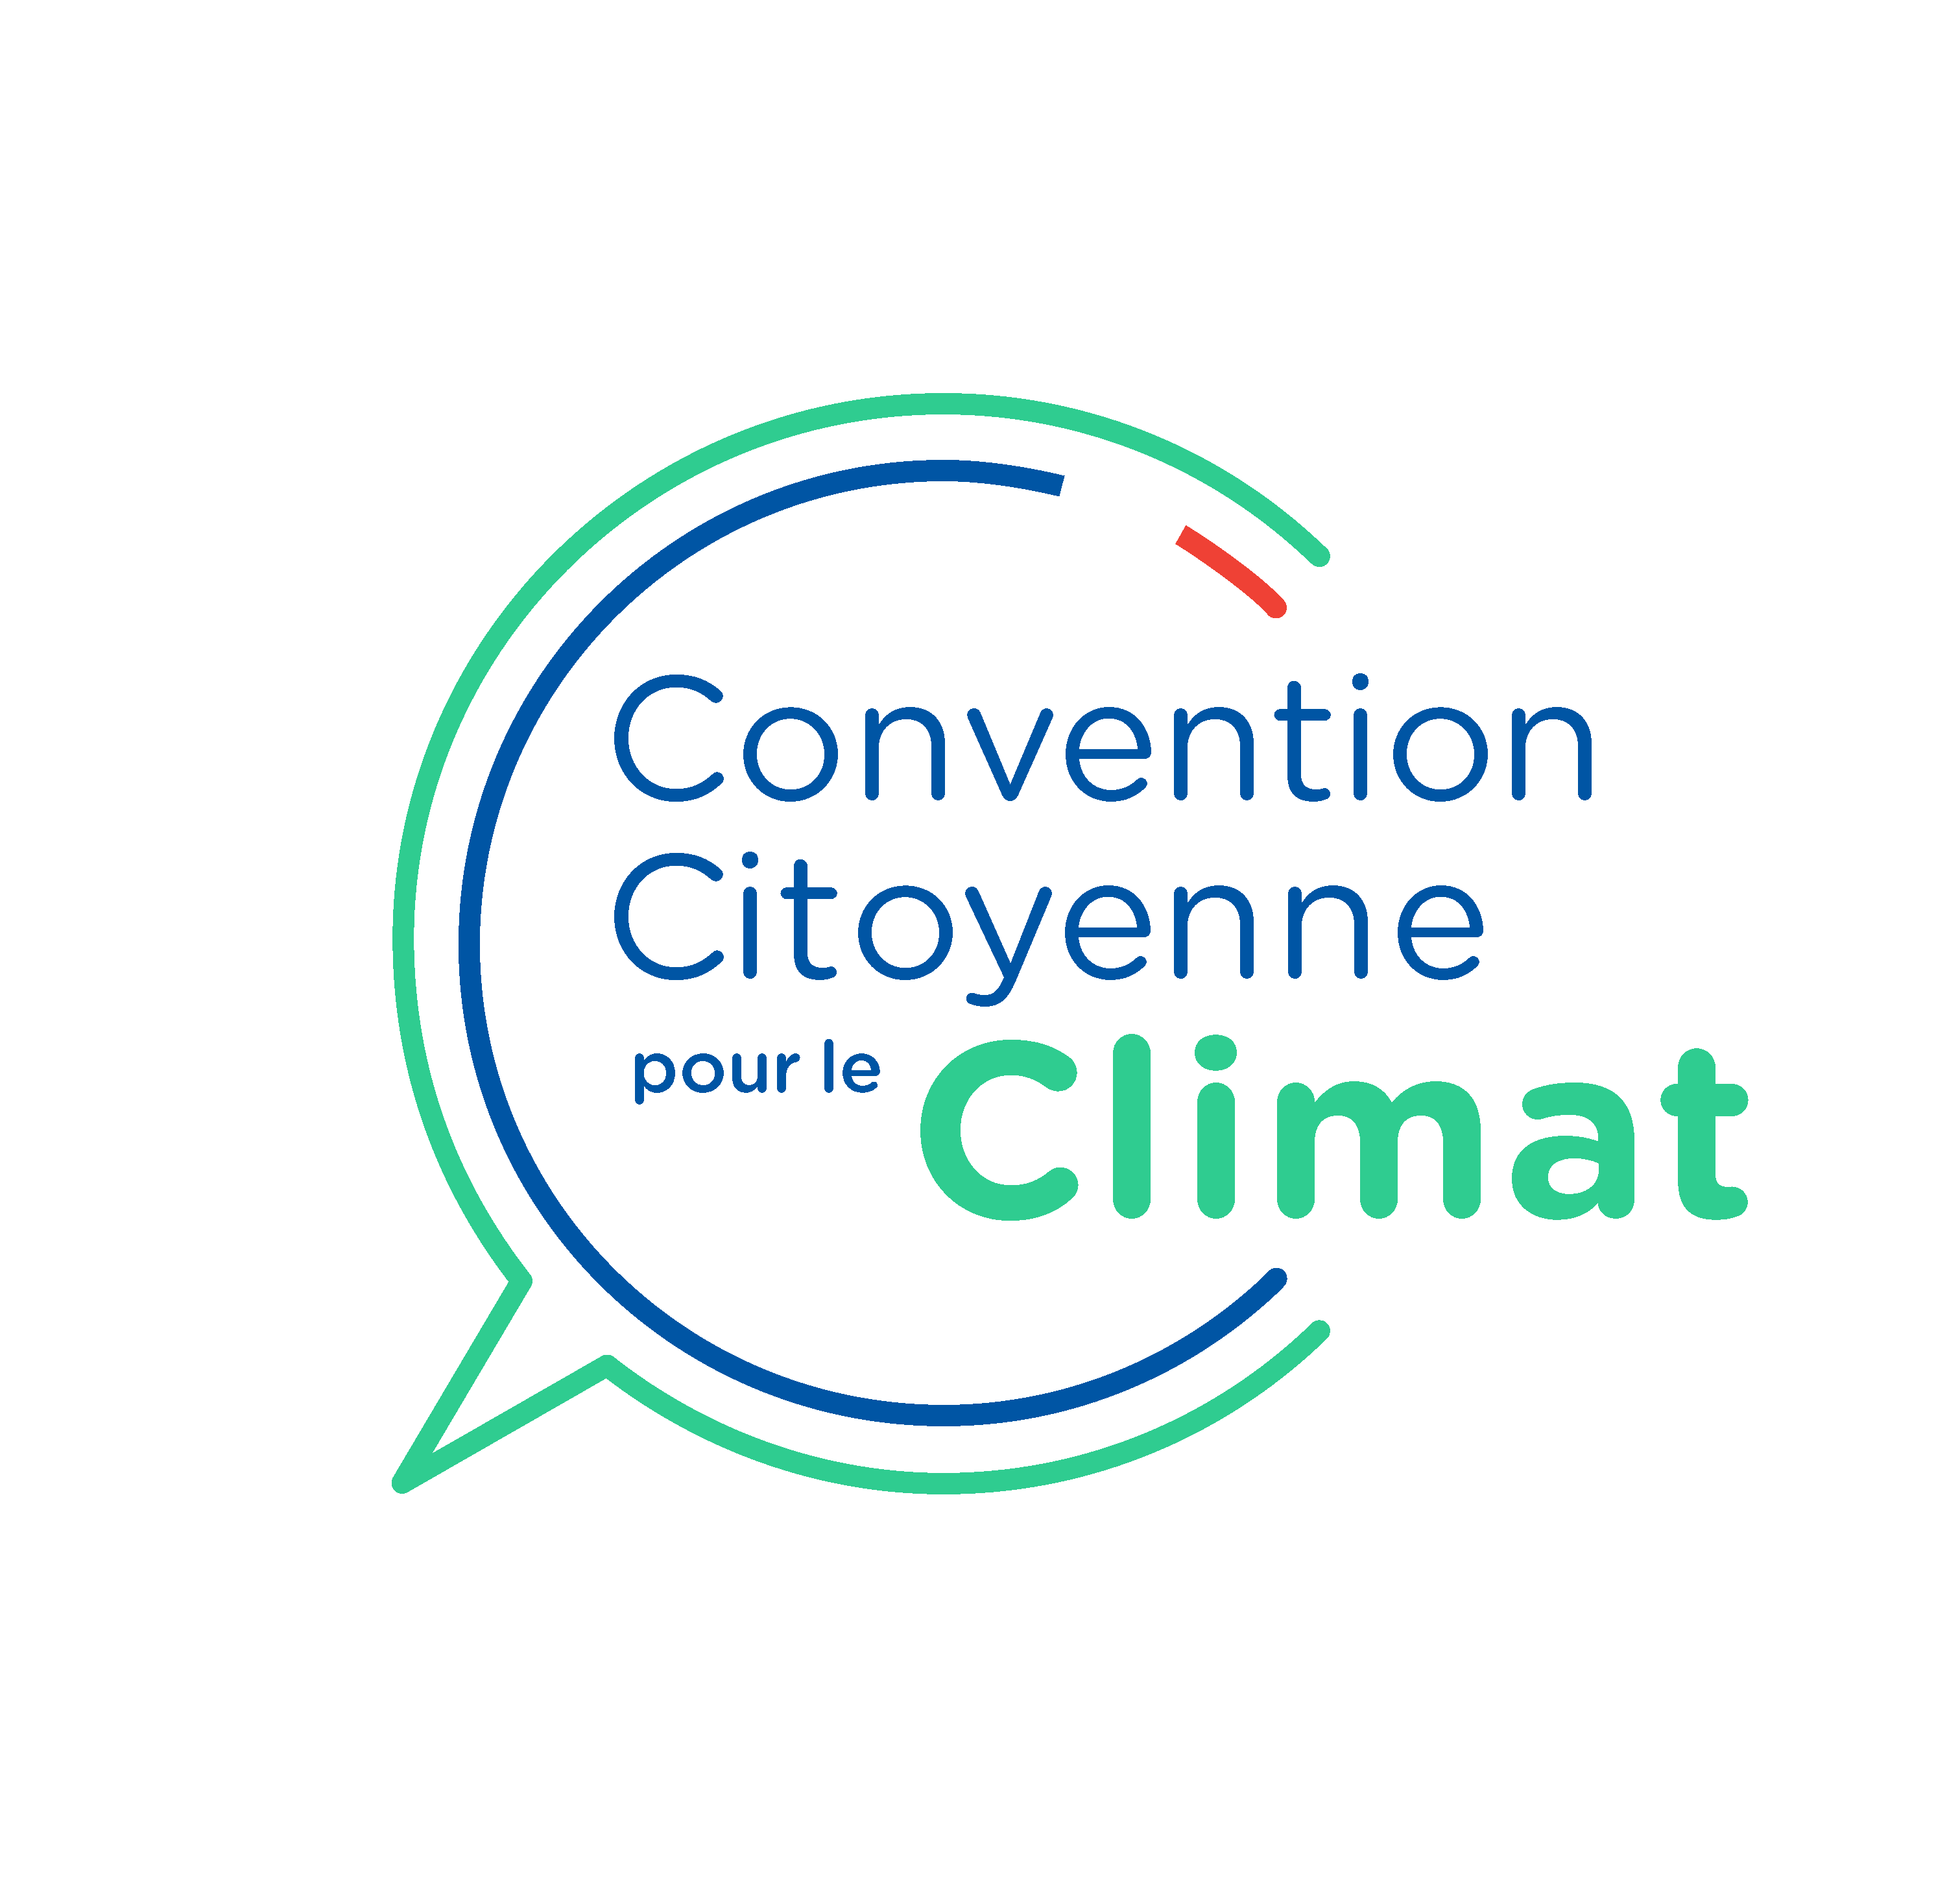 Convention-citoyenne-climat-FINAL-02